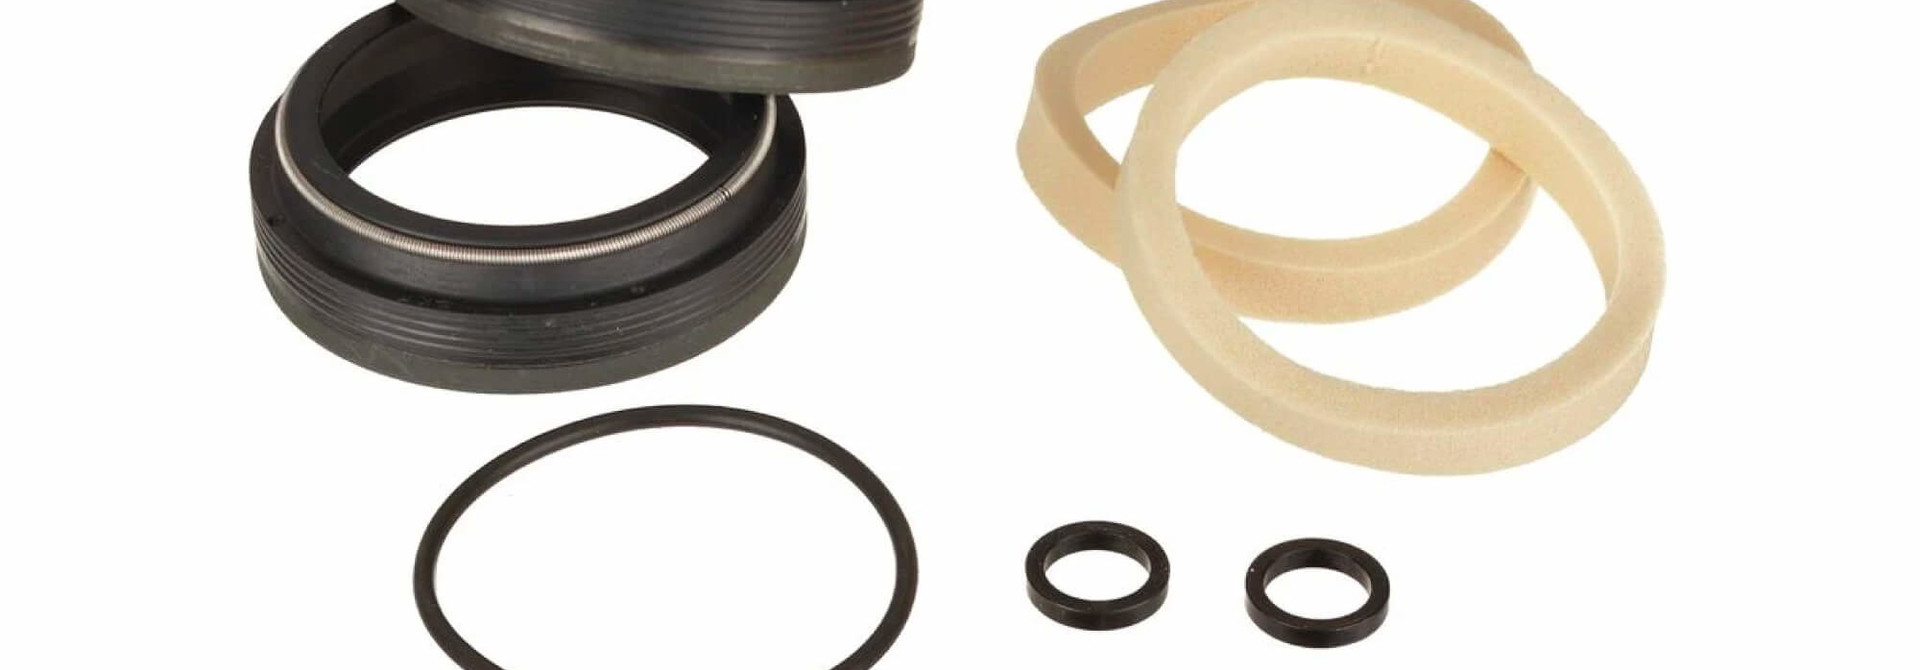 Dust Wiper 36 Low Friction No Flange